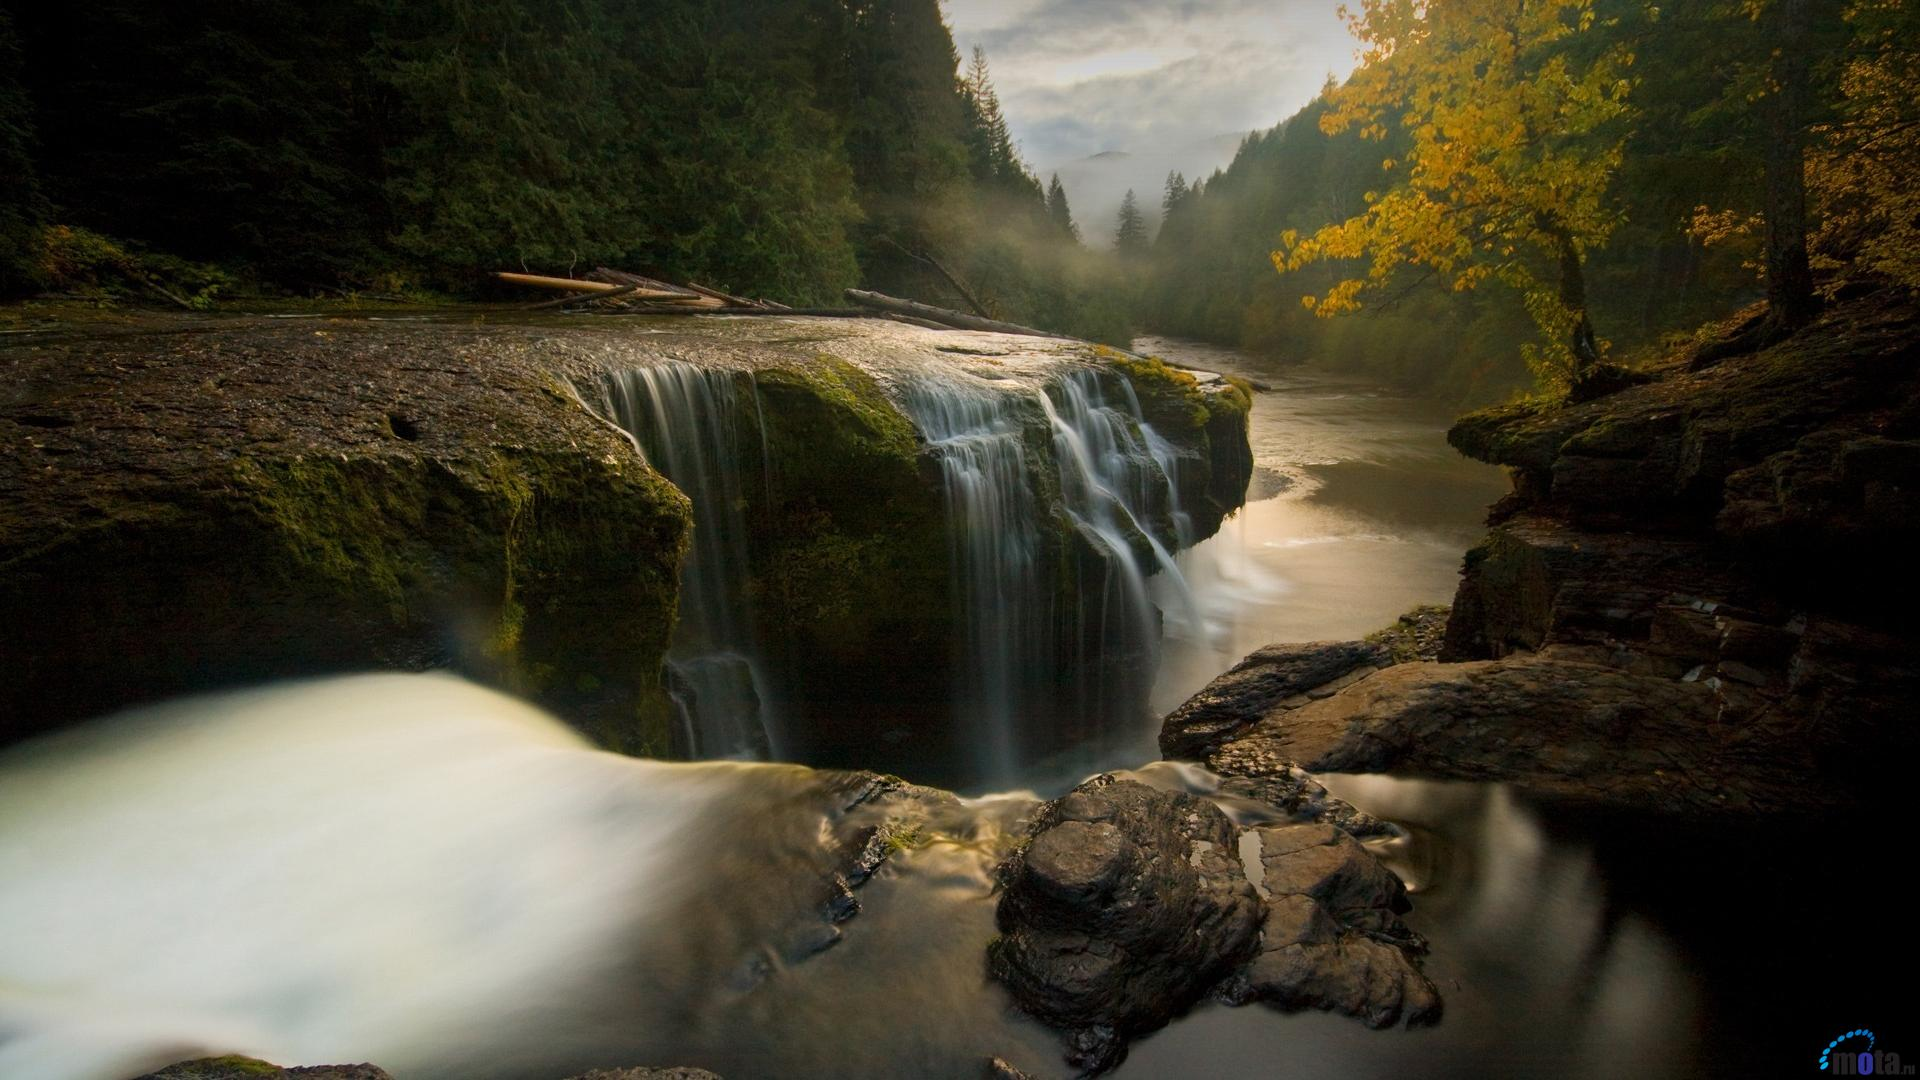 Desktop wallpapers Sun sets over Lower Lewis River Falls in Washington State.